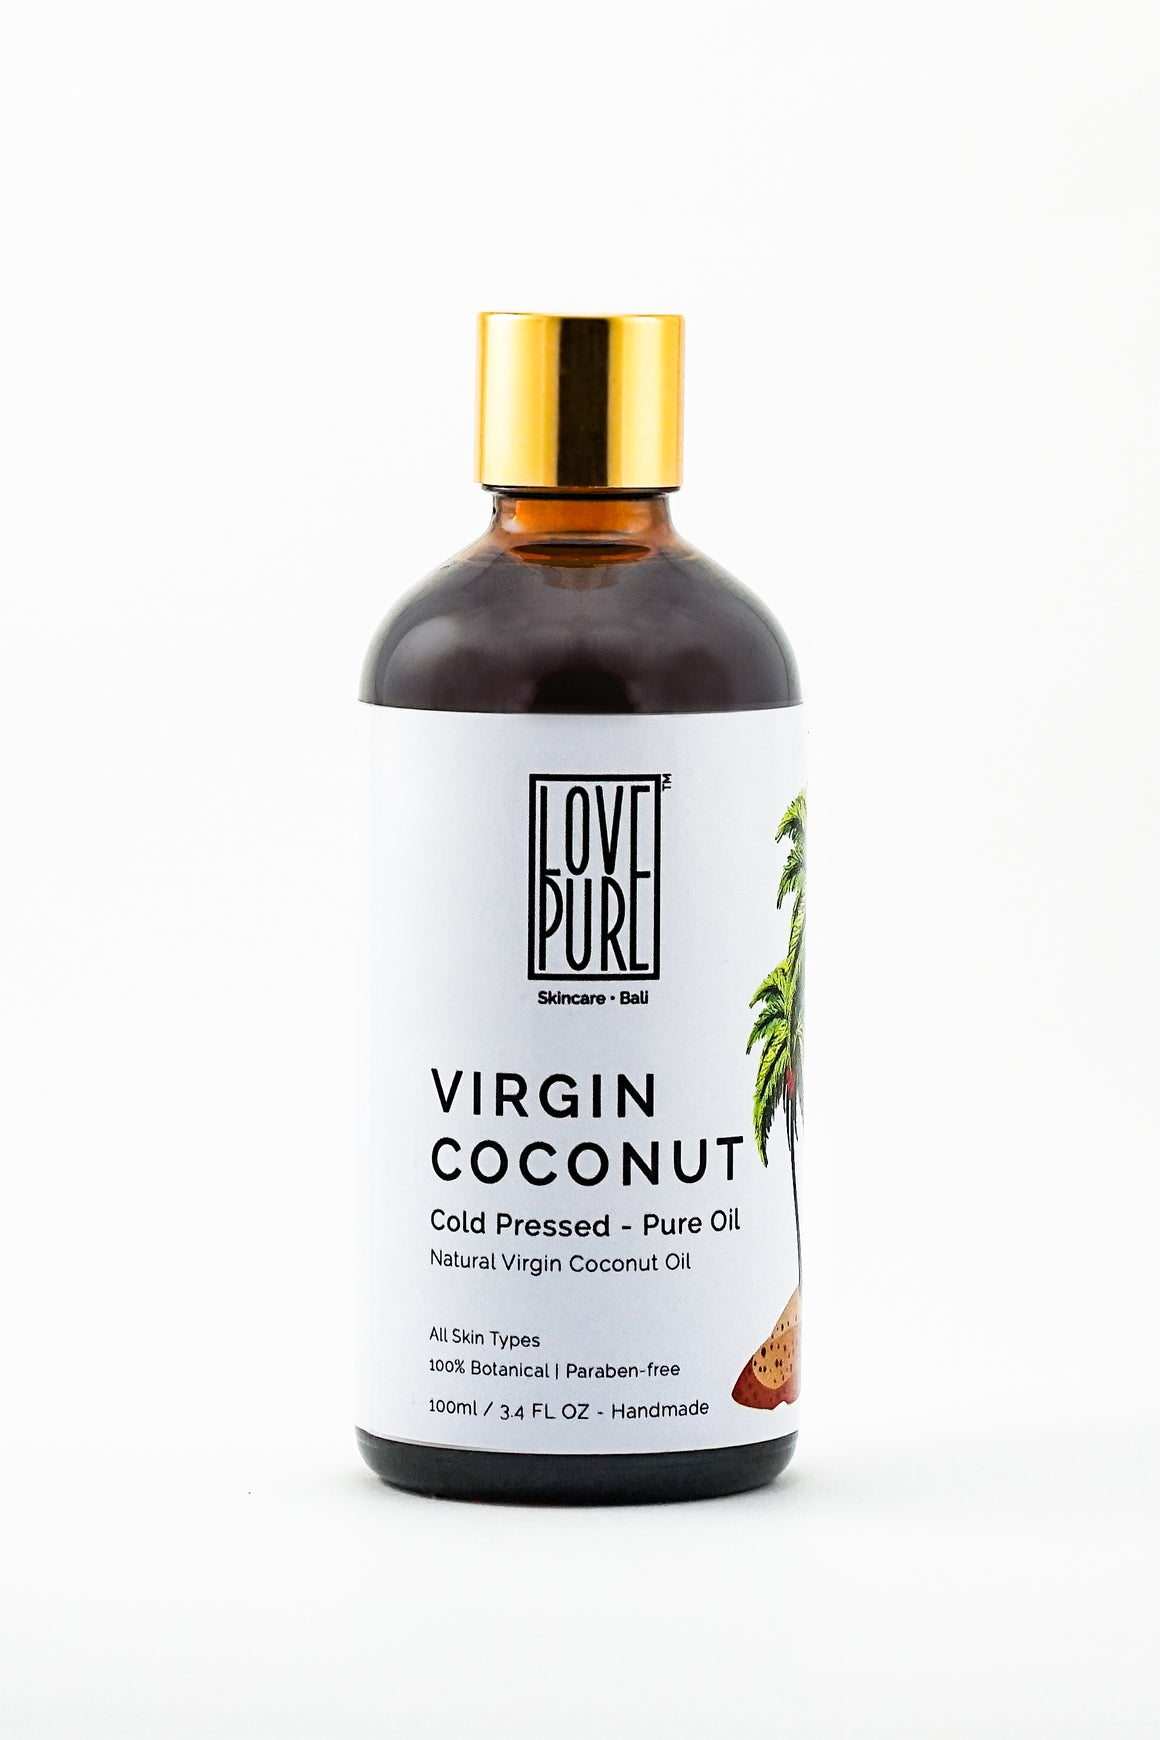 Pure cold pressed Virgin Coconut Oil